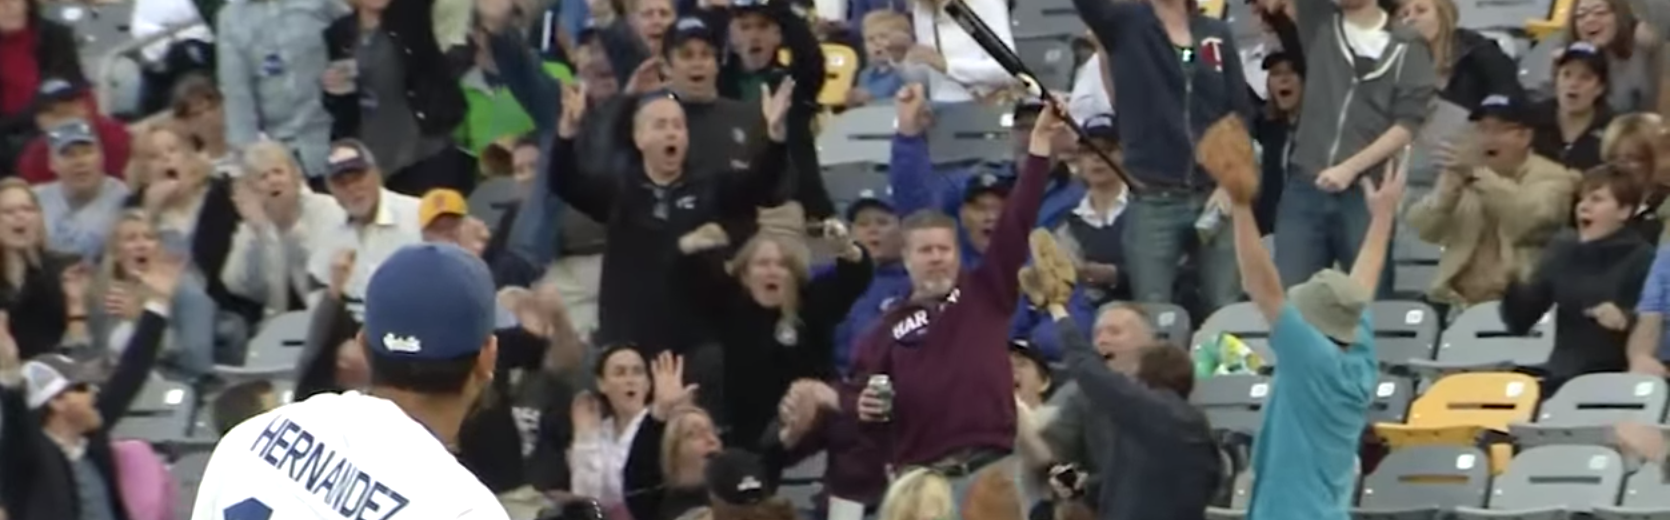 Amazing One-Handed Catch of Flying Bat by a Fan